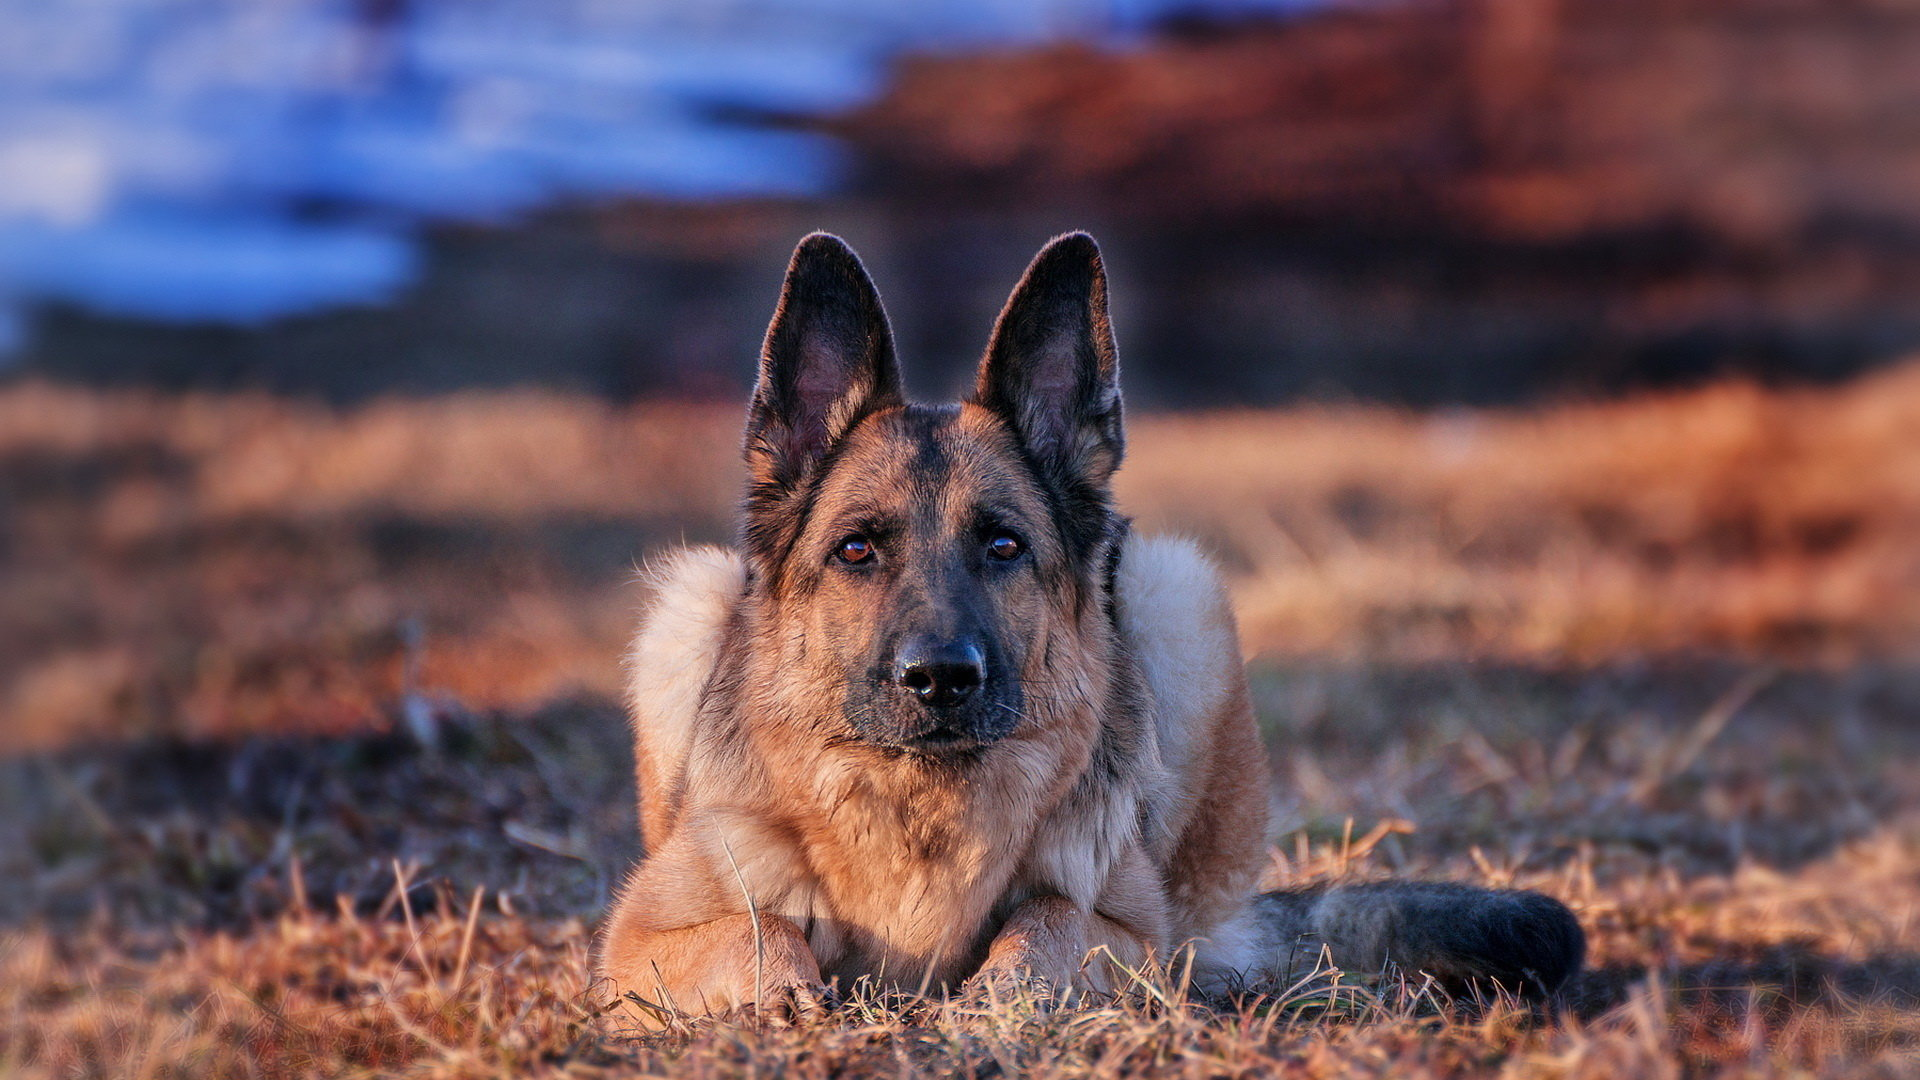 Awesome German Shepherd free wallpaper ID:111167 for hd 1920x1080 computer